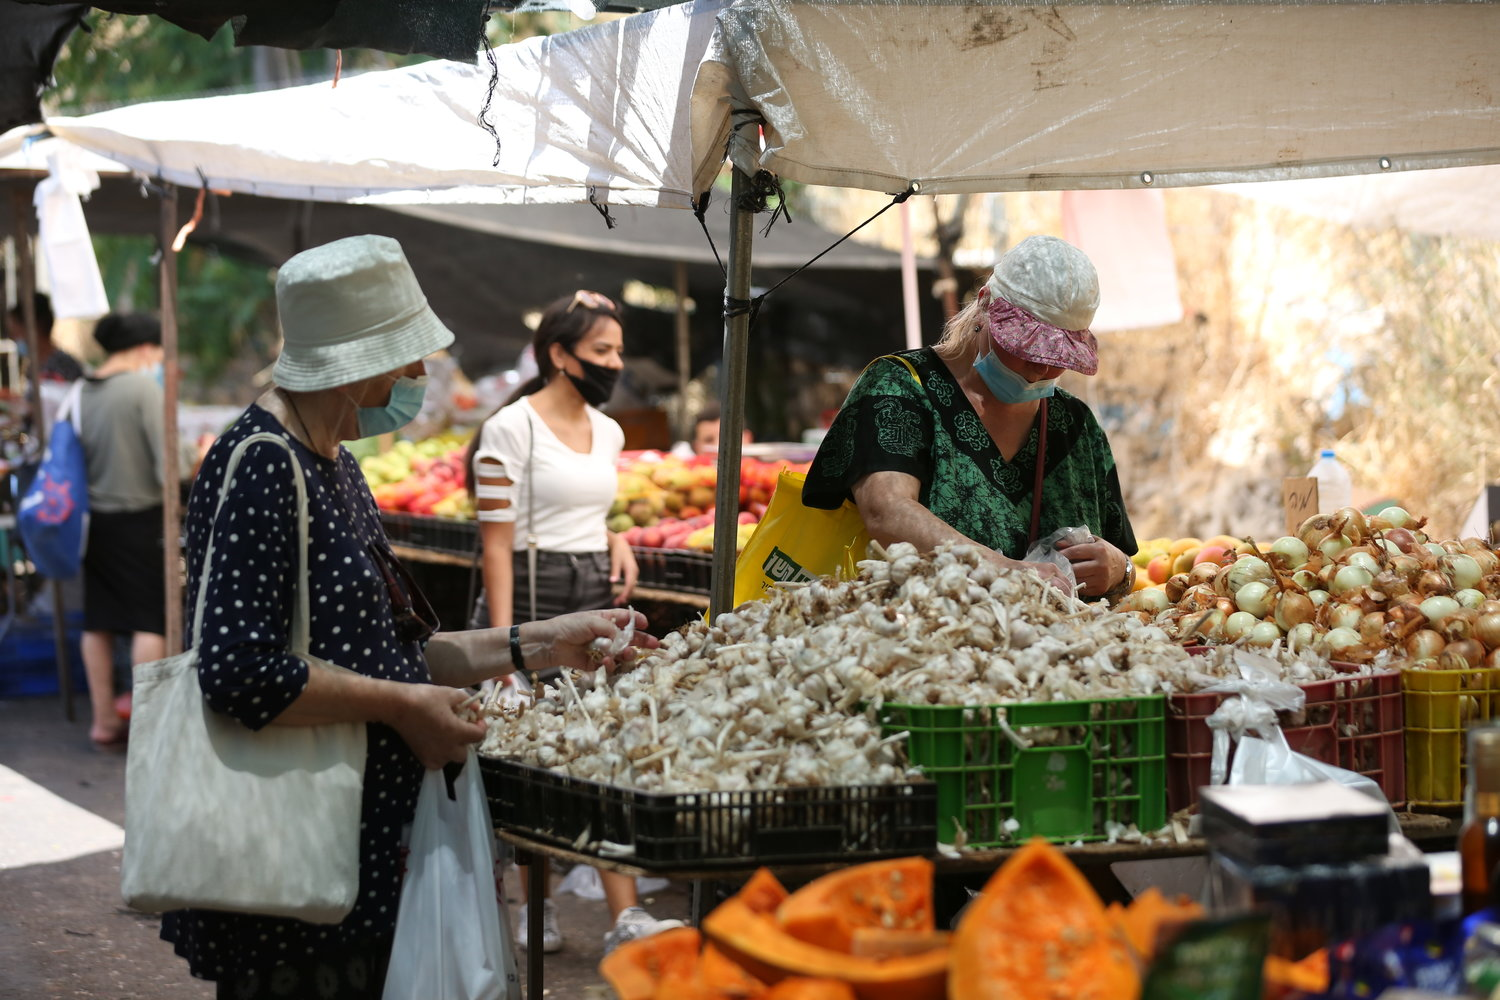 Shoppers are back at Israeli outdoor markets, such as this one in Tzfat, pictured July 15, 2020, but Delicious Experiences lives on.